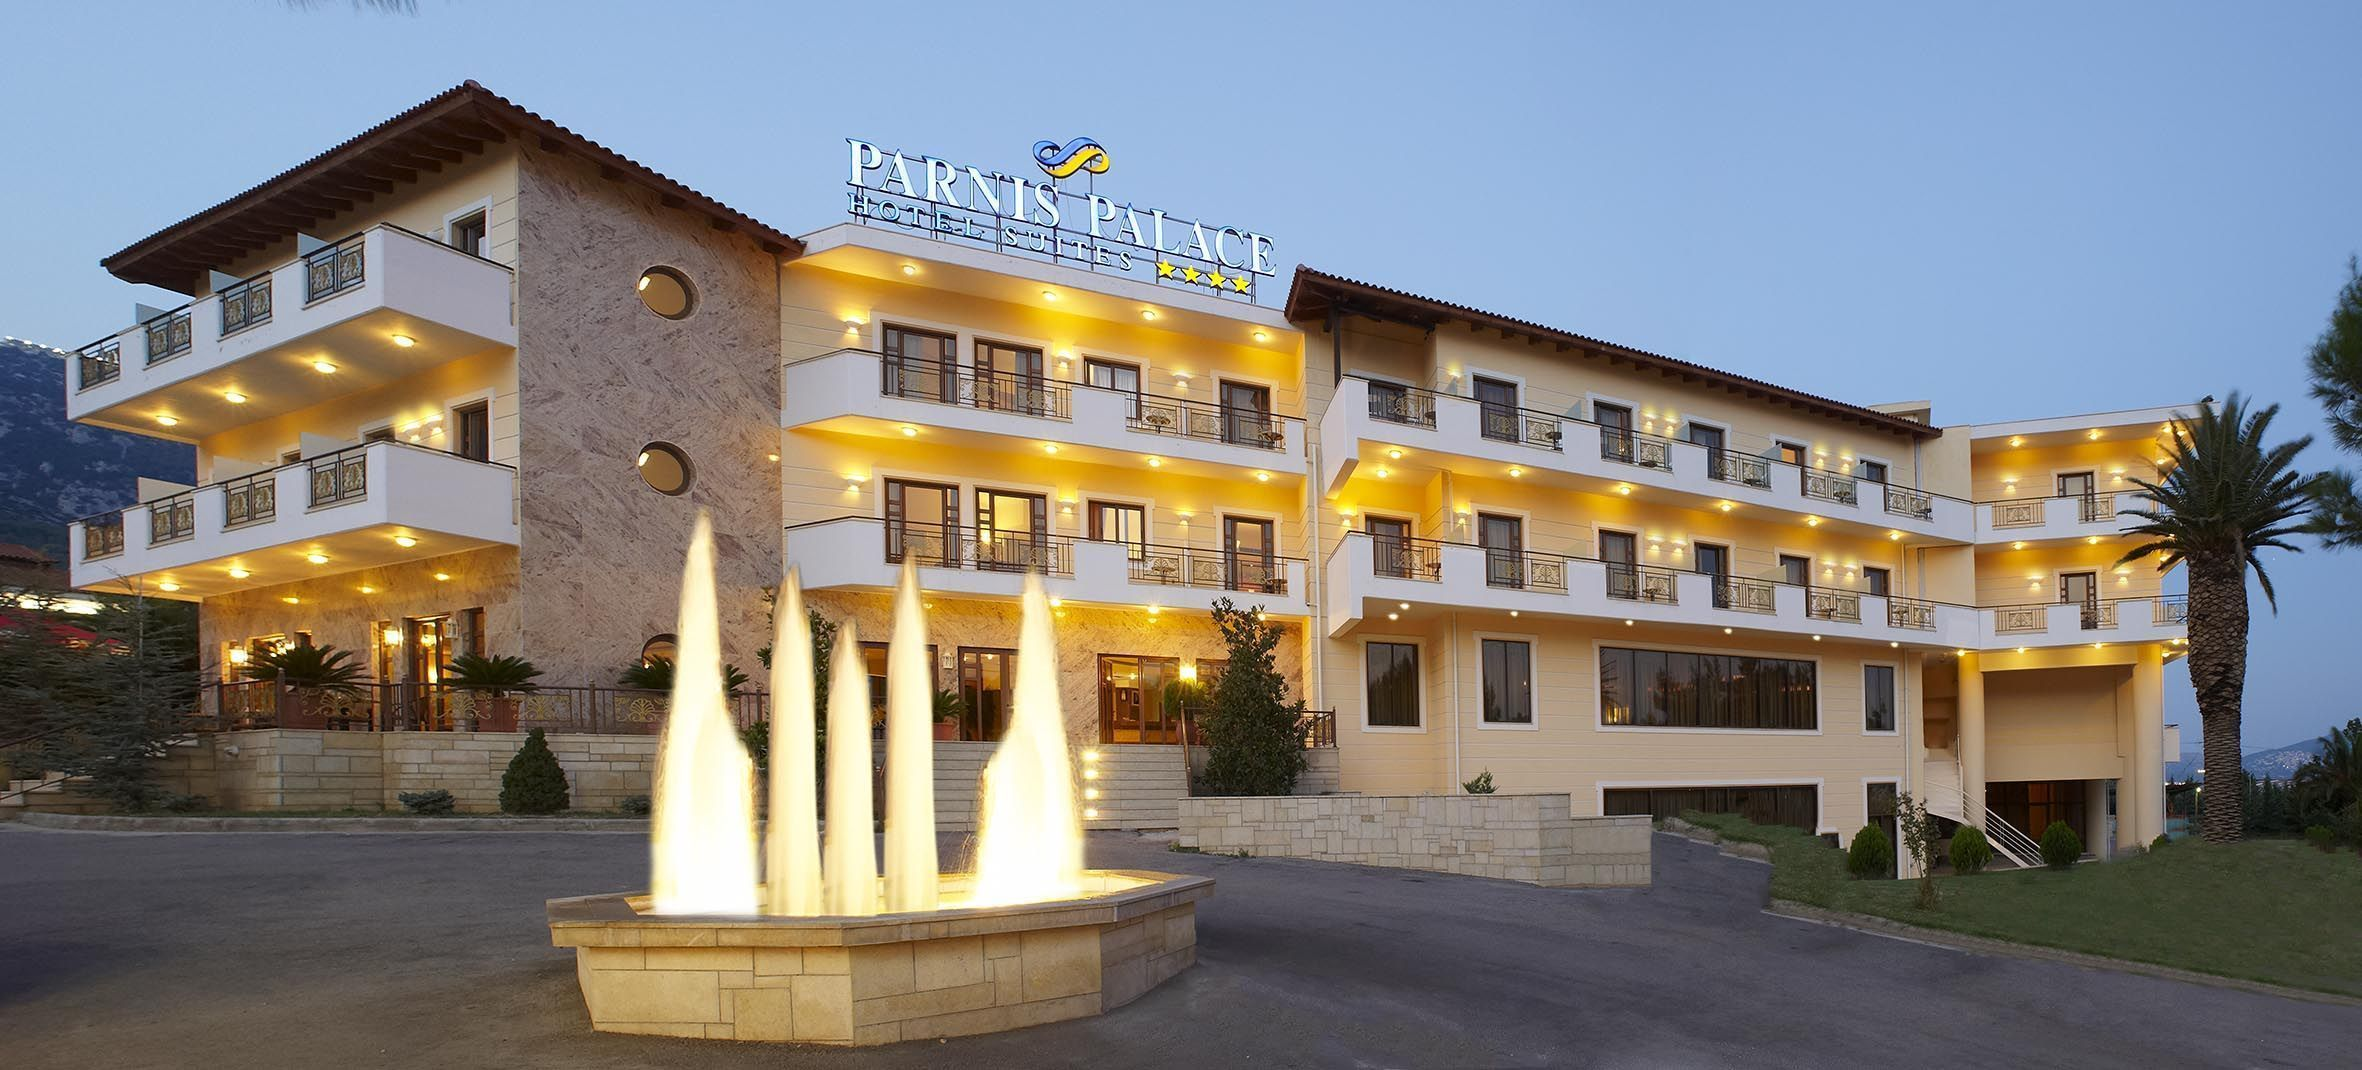 Parnis Palace Hotel Suites